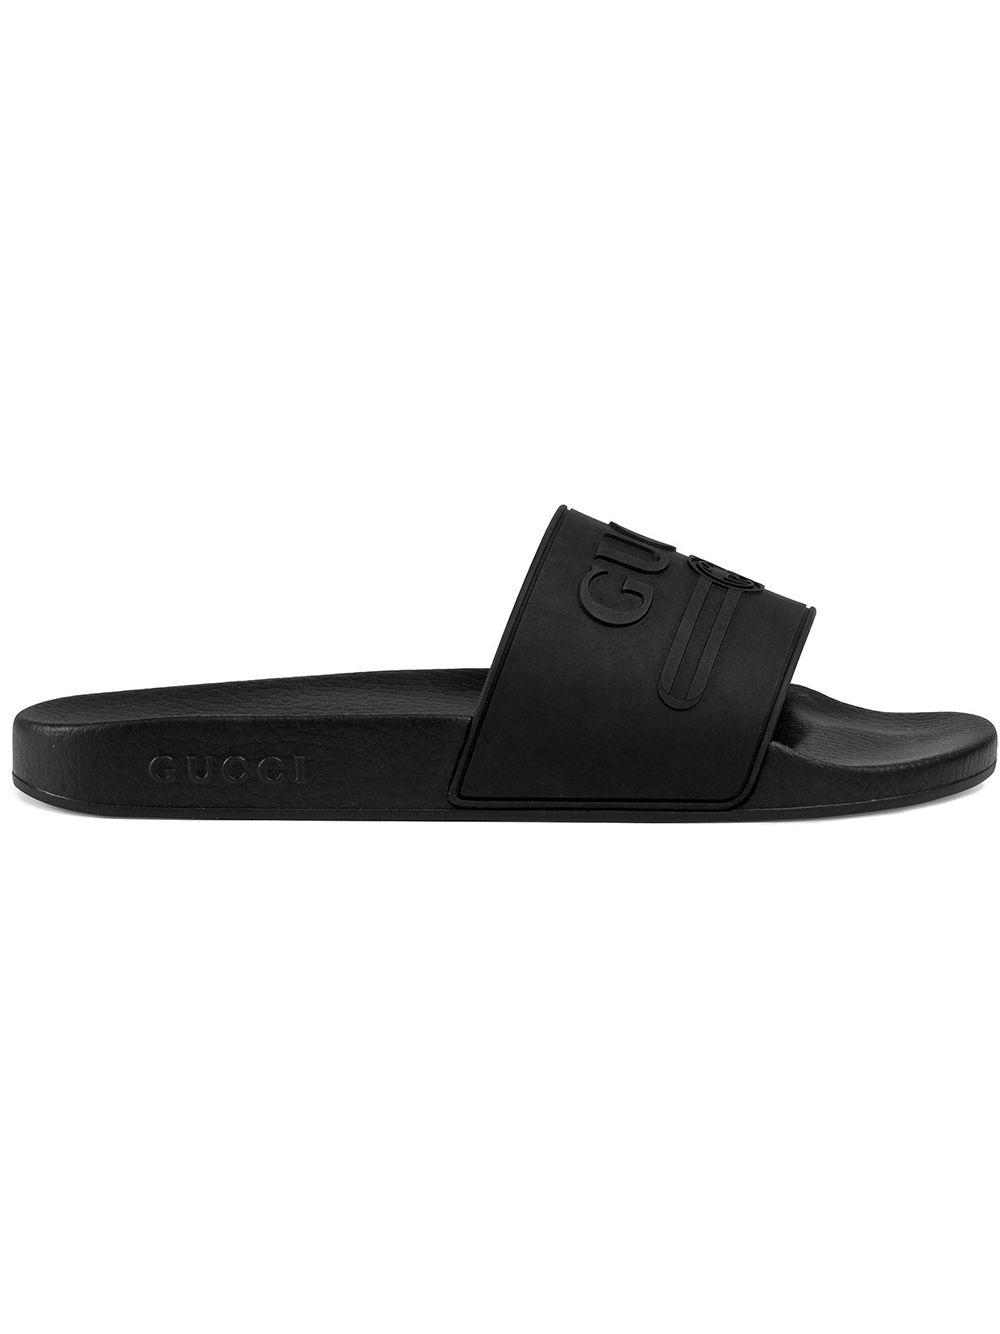 7952d32261a463 Gucci Pursuit Rubber Slide Sandals In Black